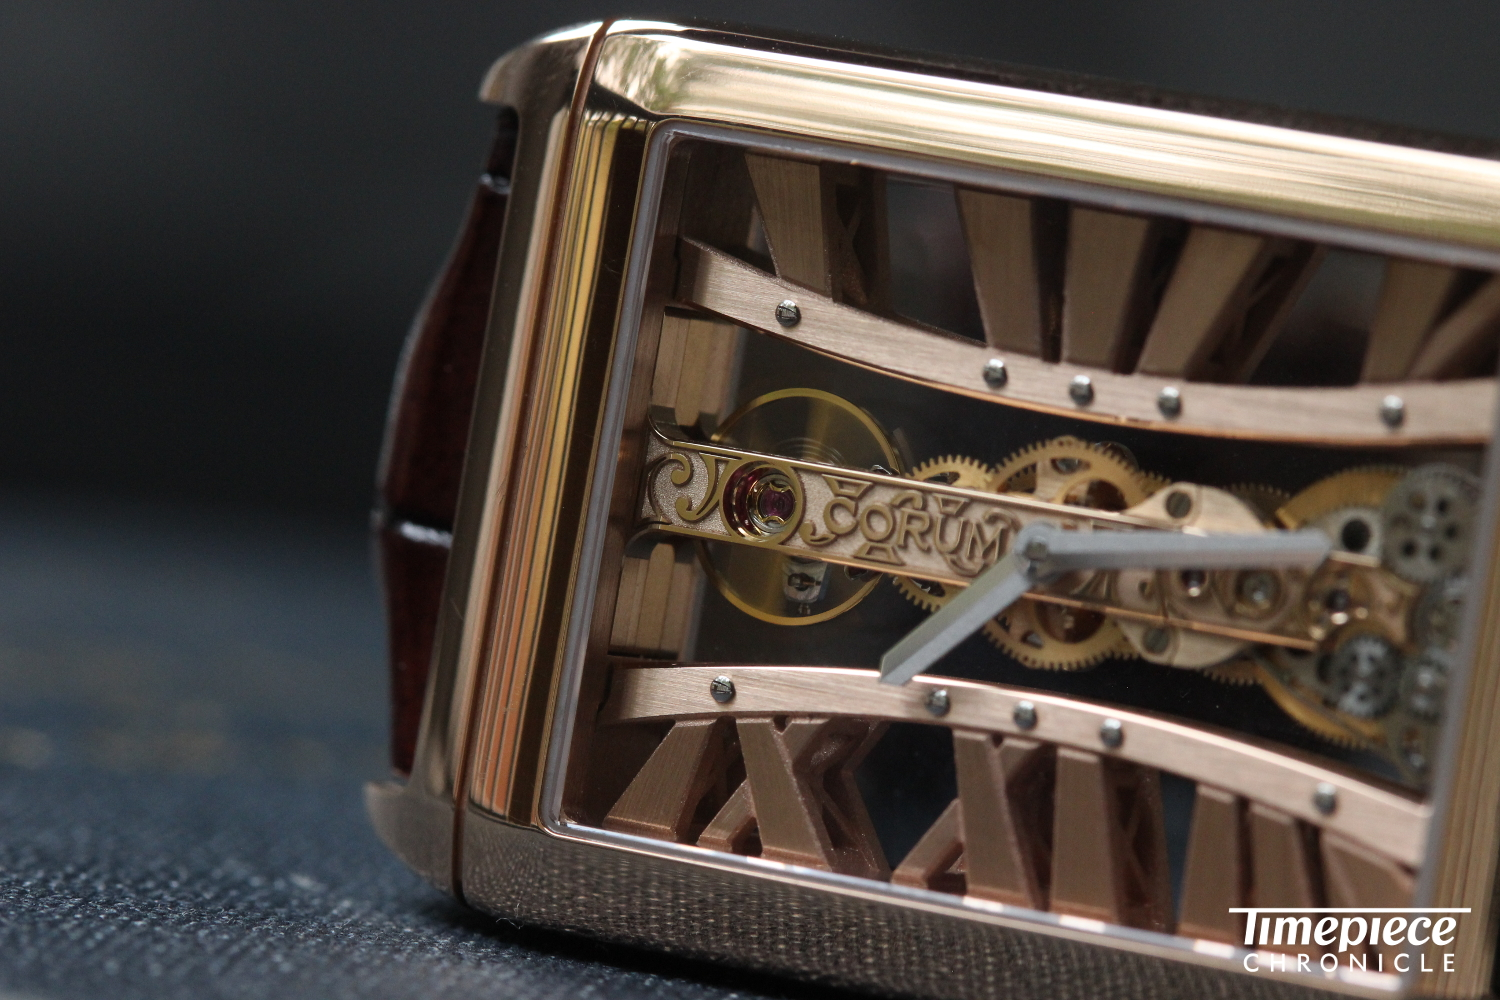 Corum Golden Bridge Rectangle 12.JPG